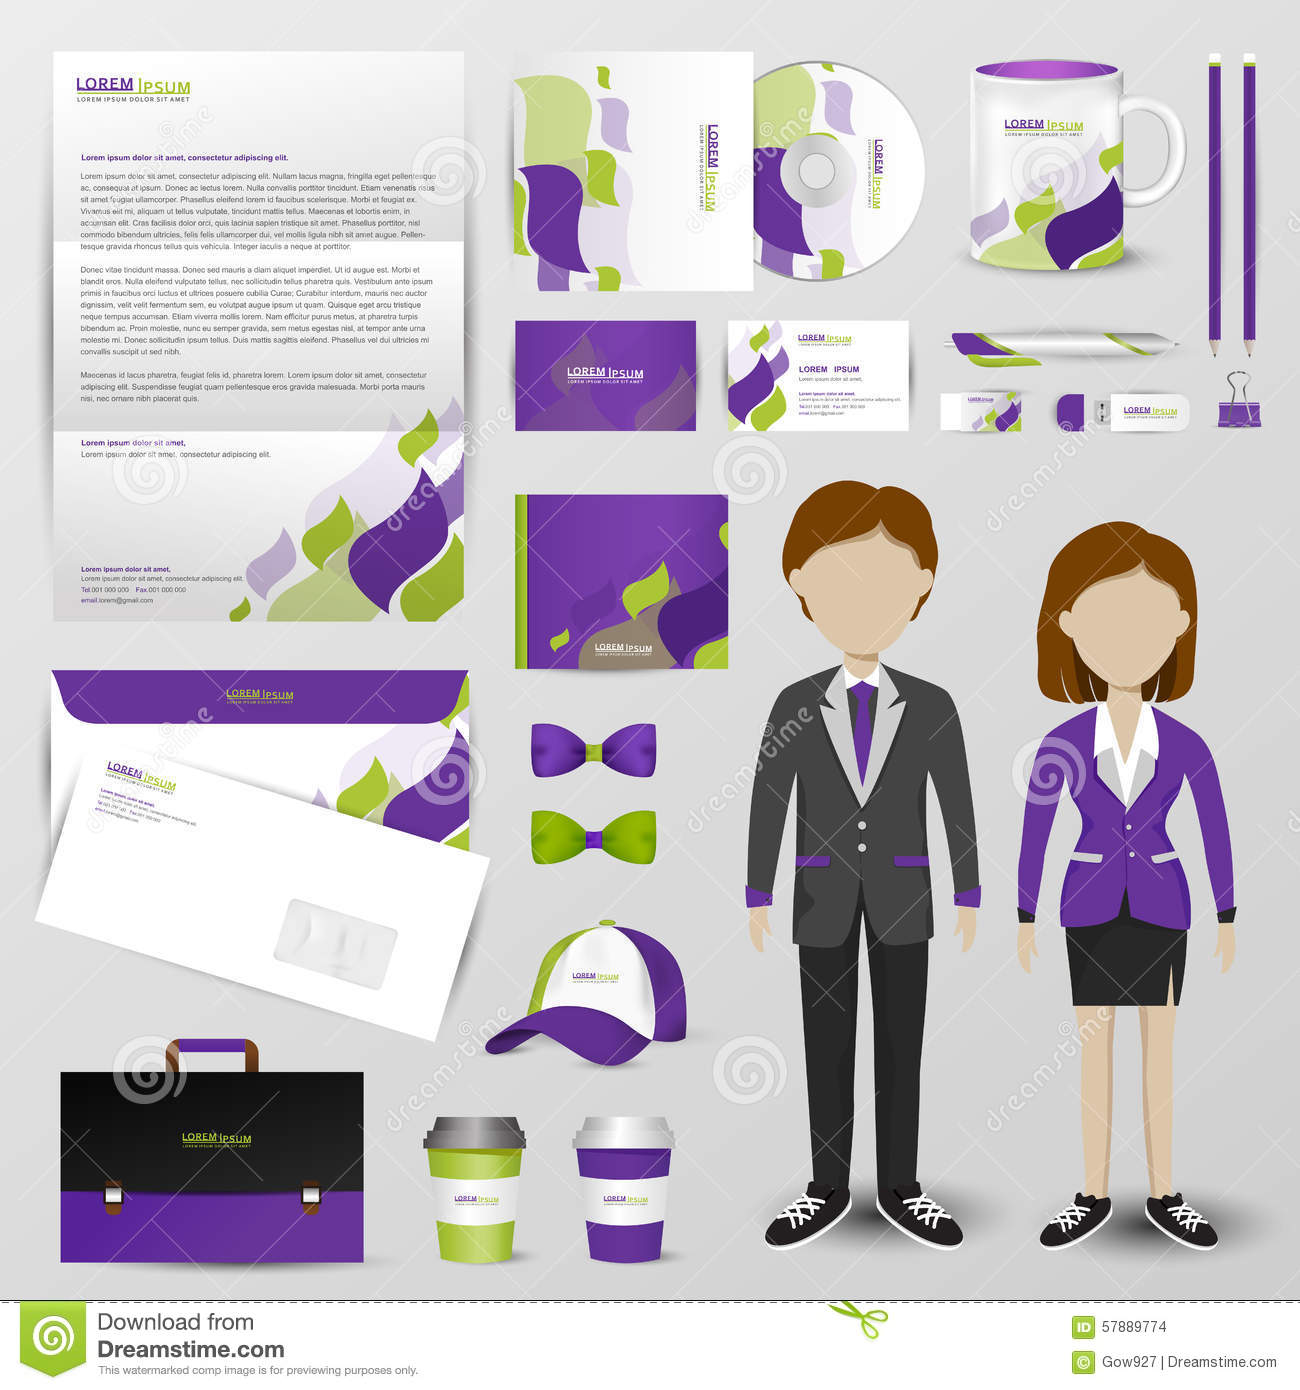 Shirt design editor free download - Business Uniform Office Stationary And Accessories Tool Such A